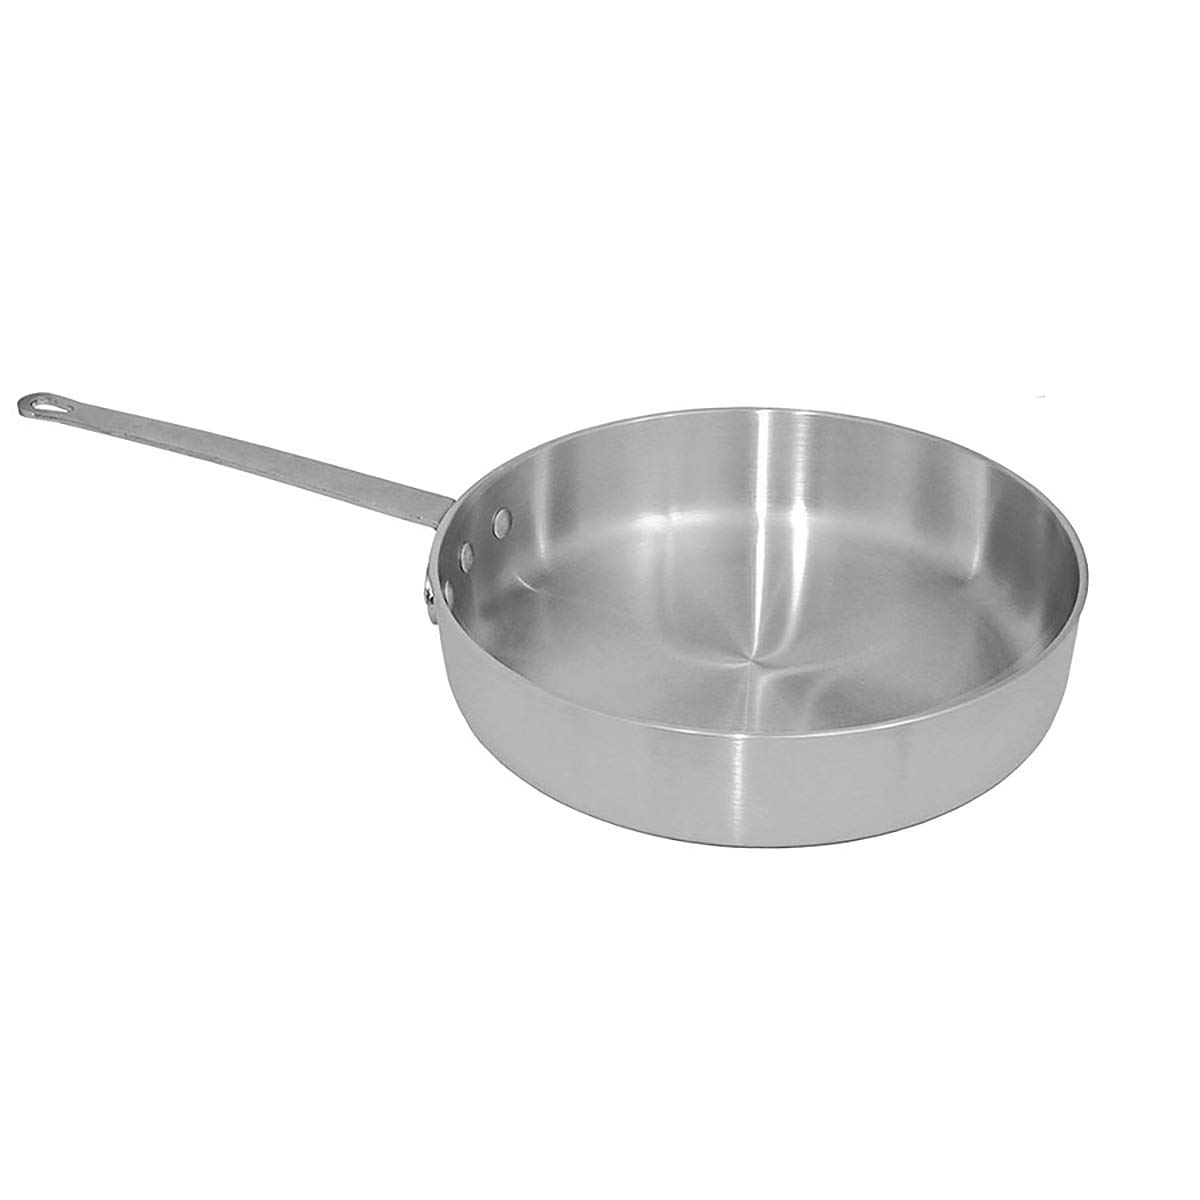 Update International (ASAU-3) 10'' Aluminum Saute Pan by Update International